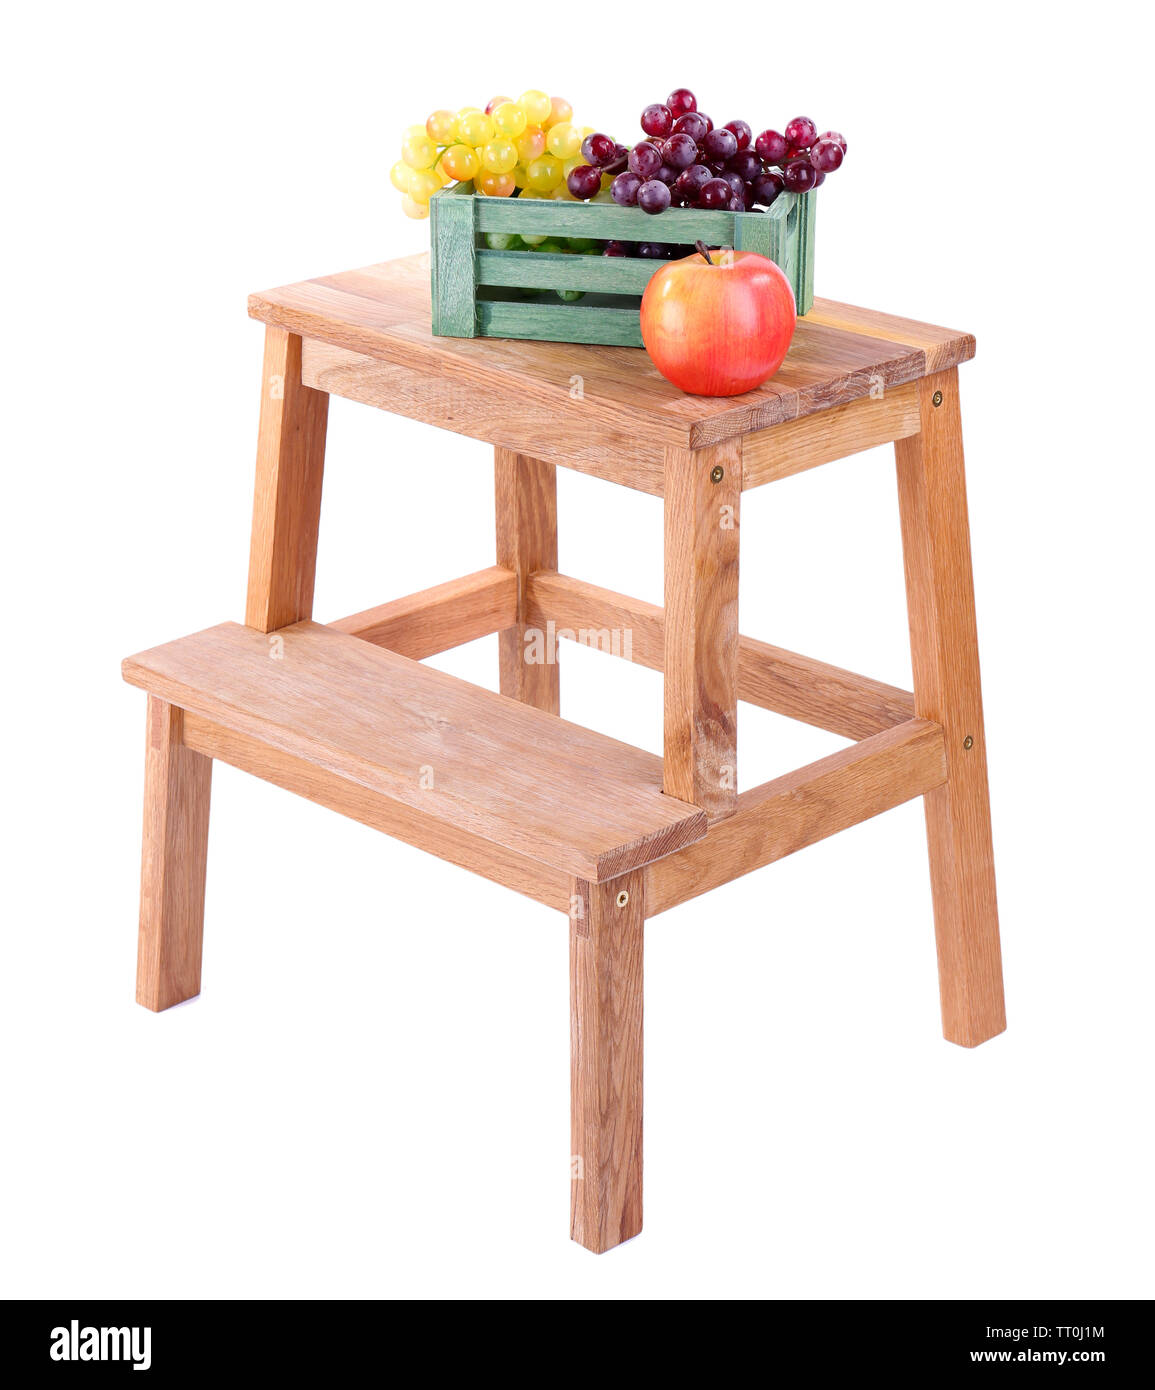 Wooden box with fruits, on small wooden ladder, isolated on